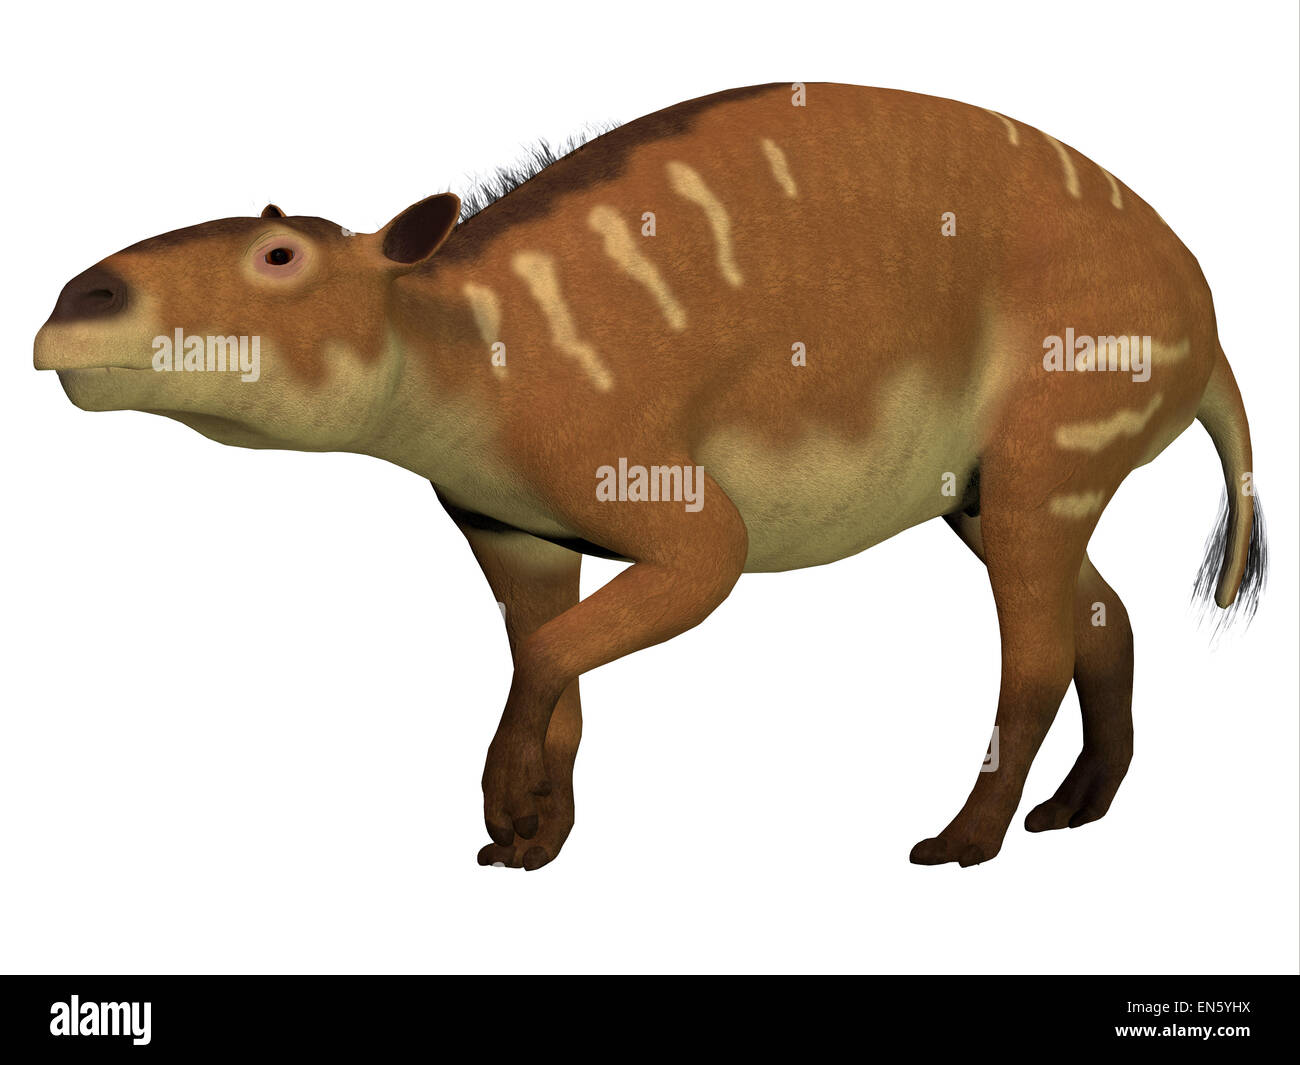 Eurohippus is the herbivorous forerunner of the horse that lived in the Eocene Period in tropical jungles of Europe. - Stock Image